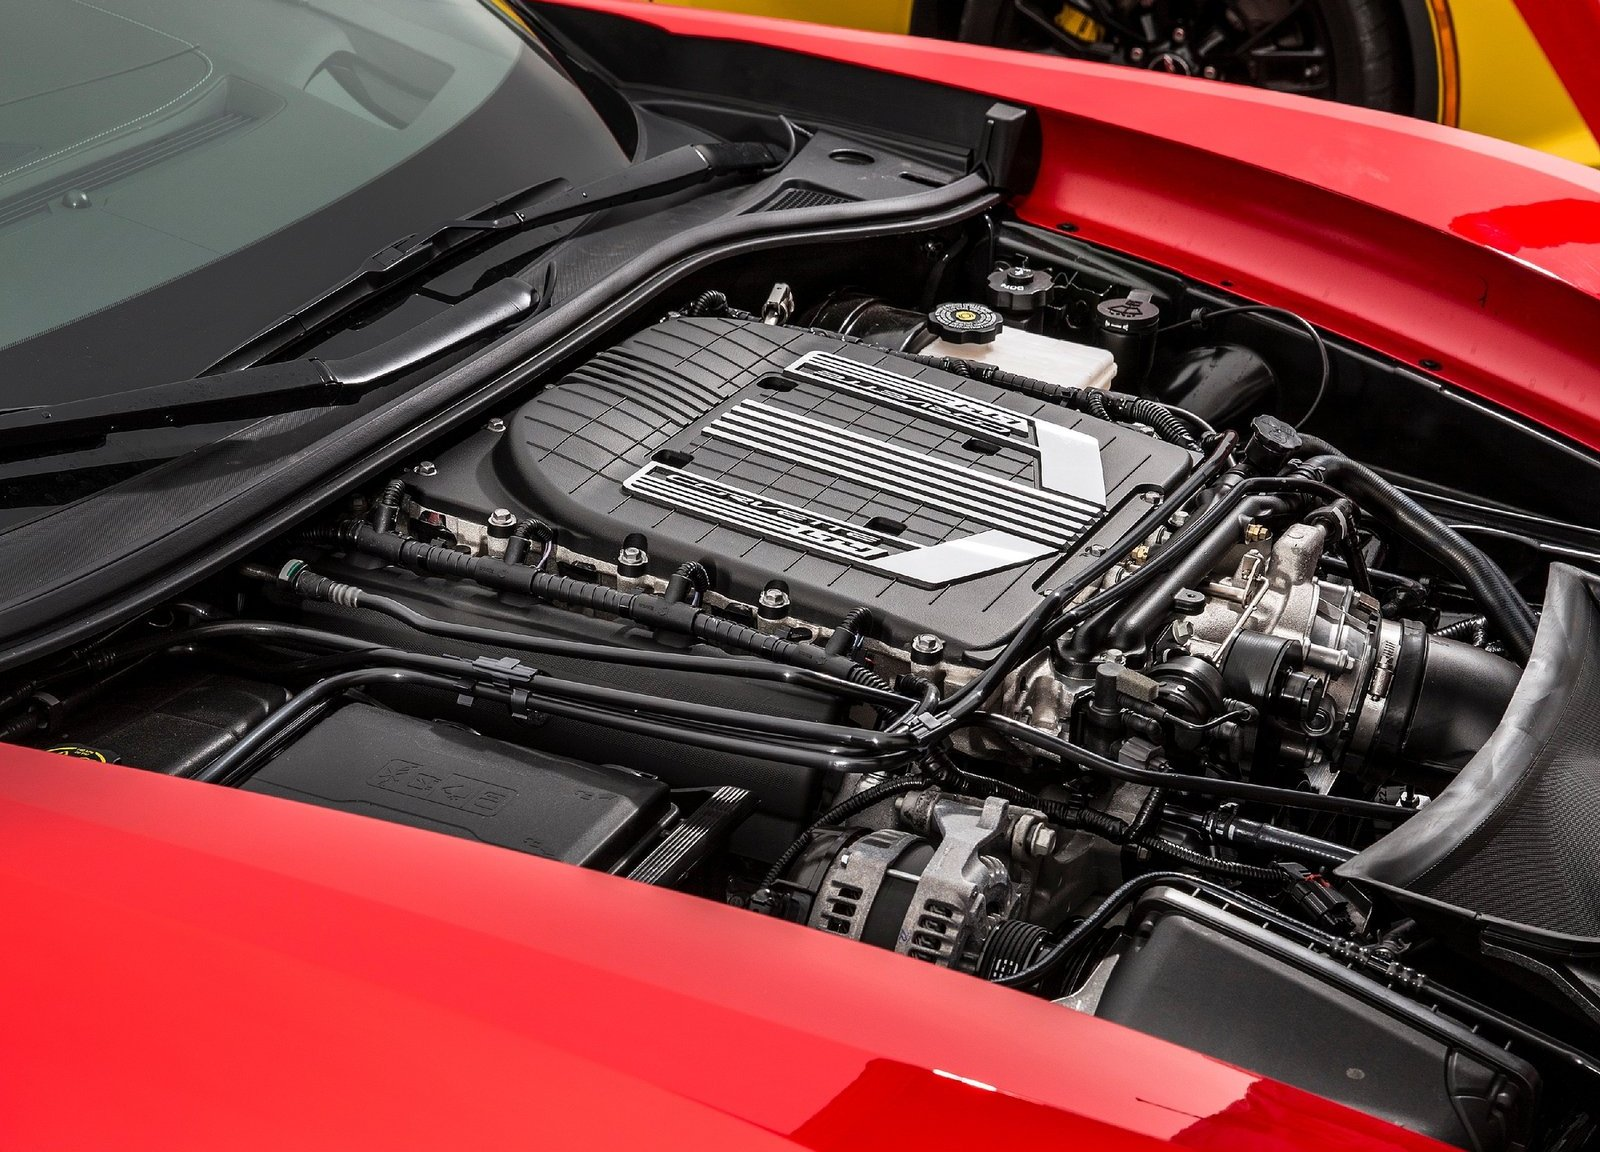 2015 Corvette Z06 Oil Should Be Changed In The First 500